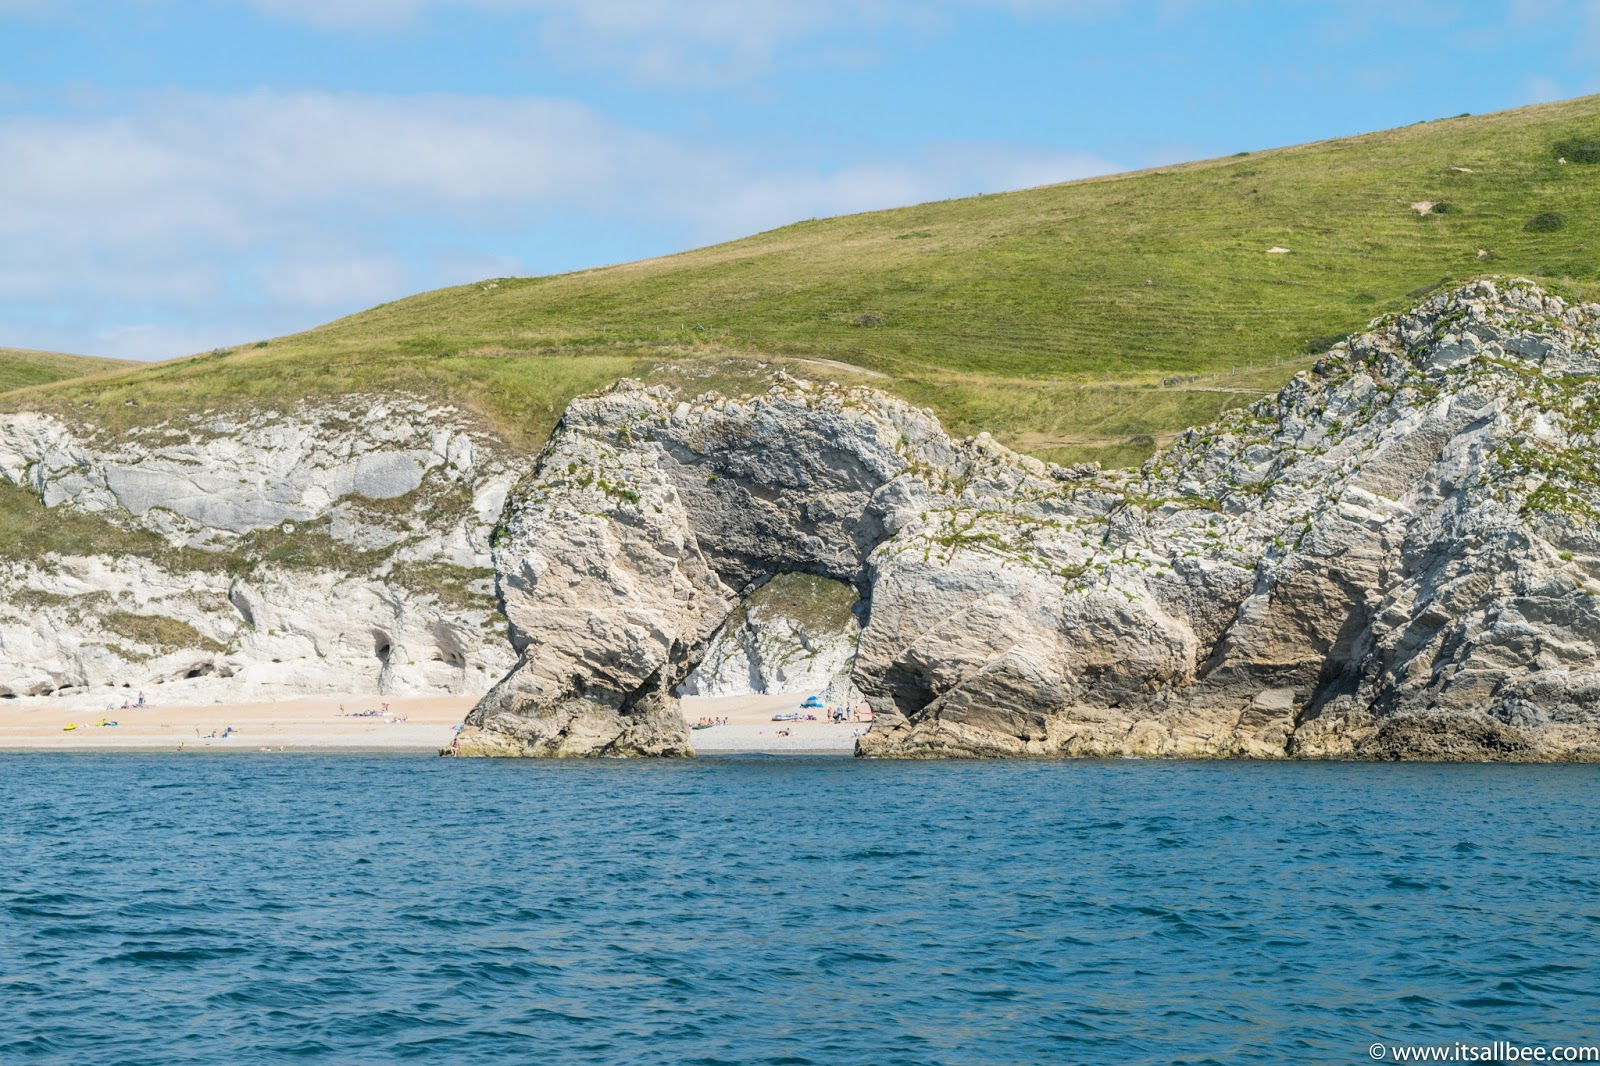 lulworth cove walks in Dorset England | lulworth cove pictures